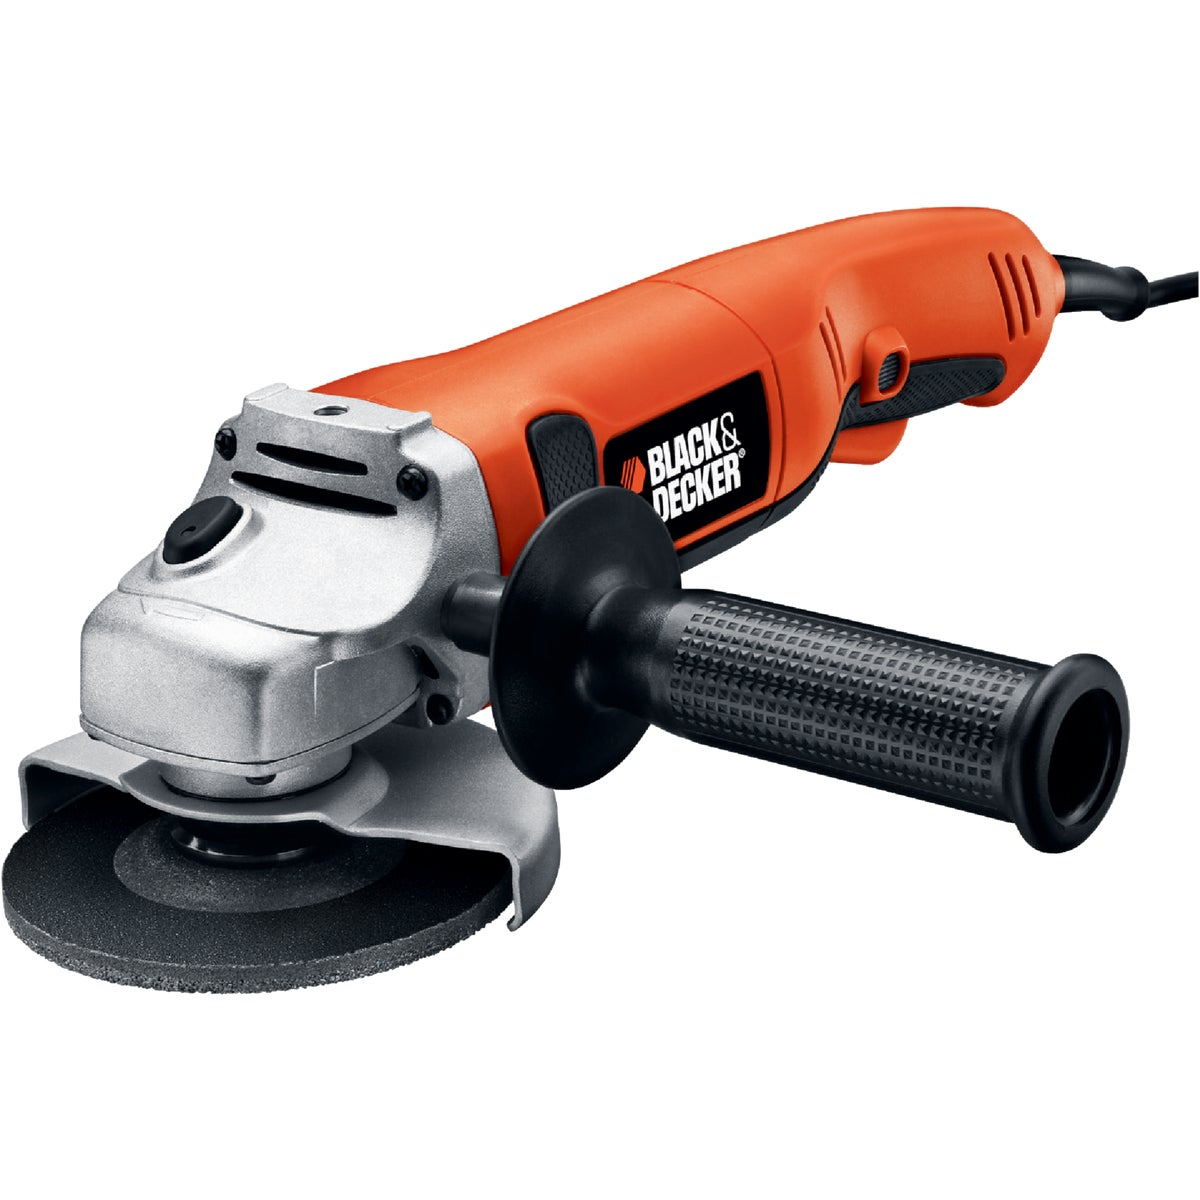 "4-1/2""6.5A ANGLE GRINDER - G950 by Black & Decker"